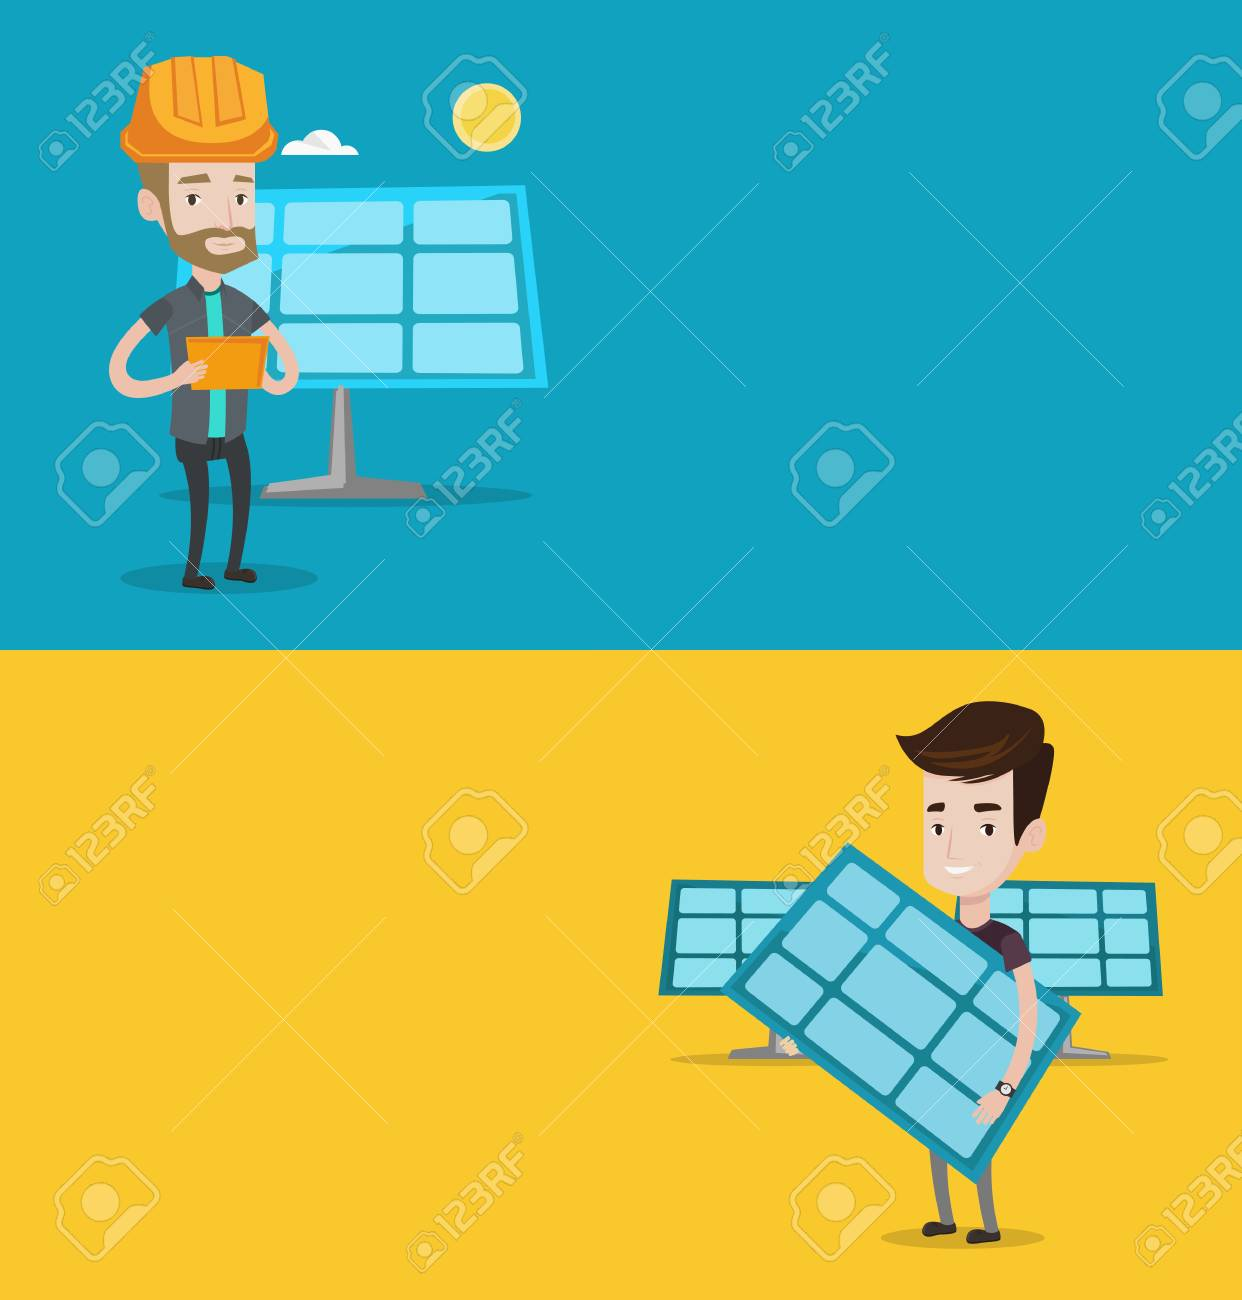 Two Ecology Banners With Space For Text Vector Flat Design Power Plant Layout Horizontal Man Working On Digital Tablet At Solar Panel Standing The Background Of